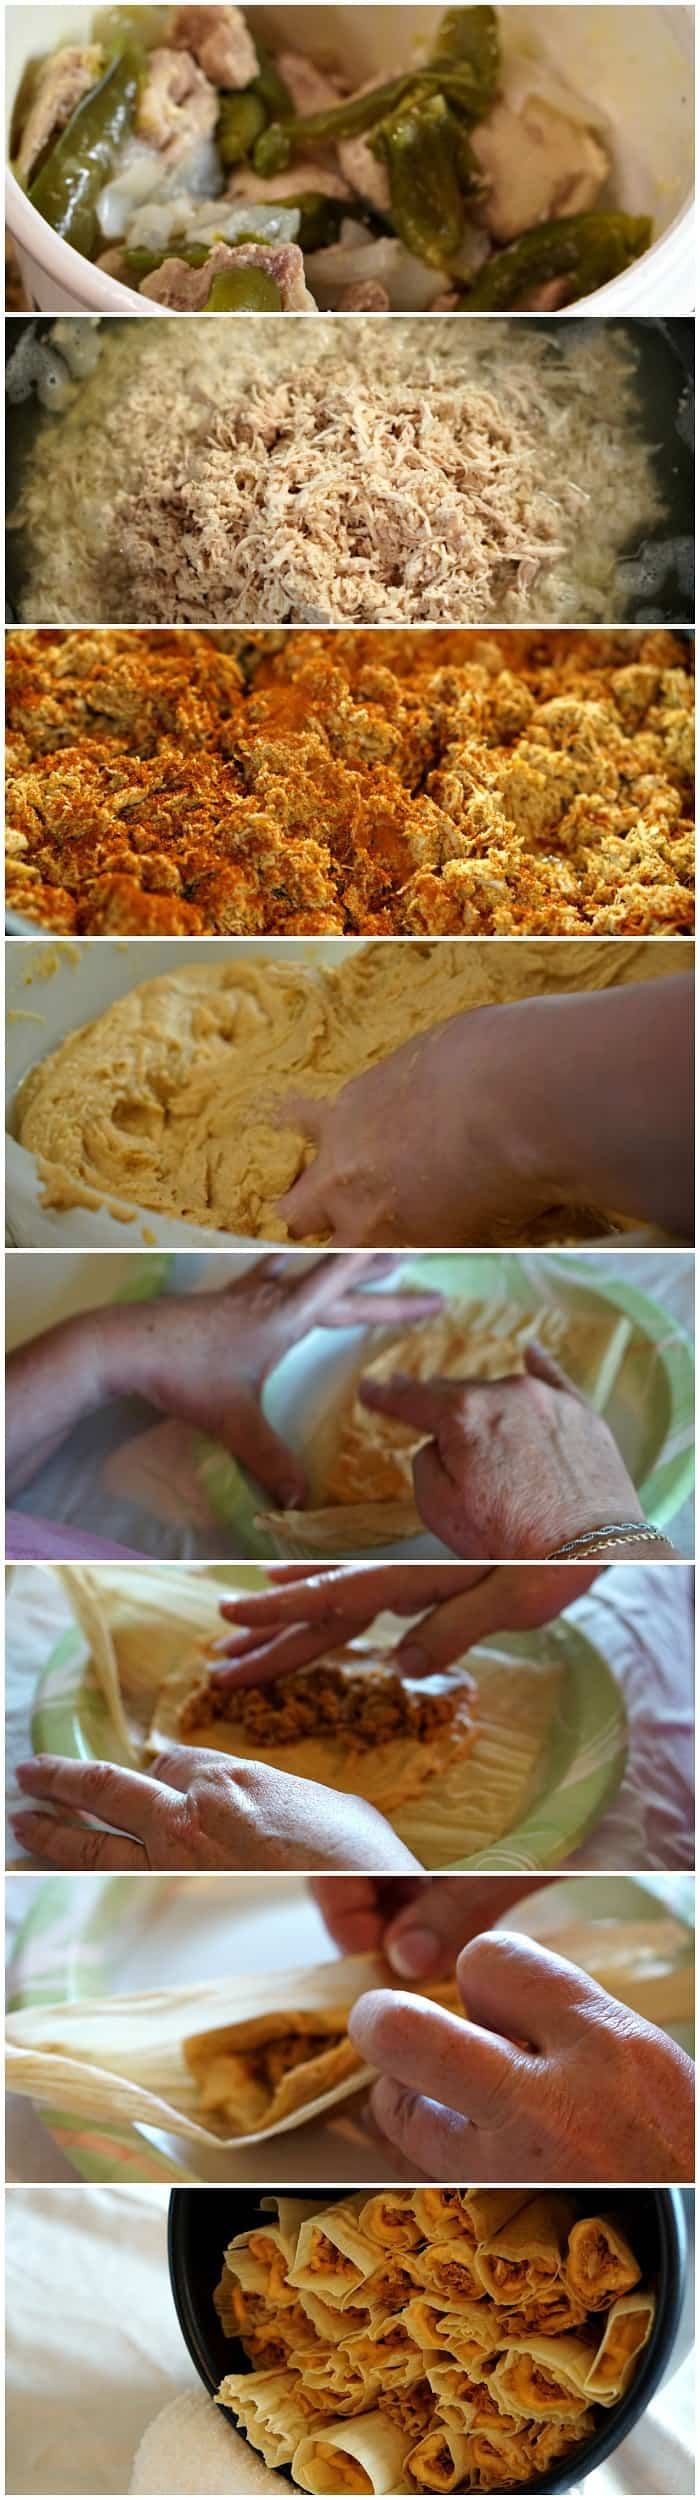 tutorial for making tamales like at the restaurant